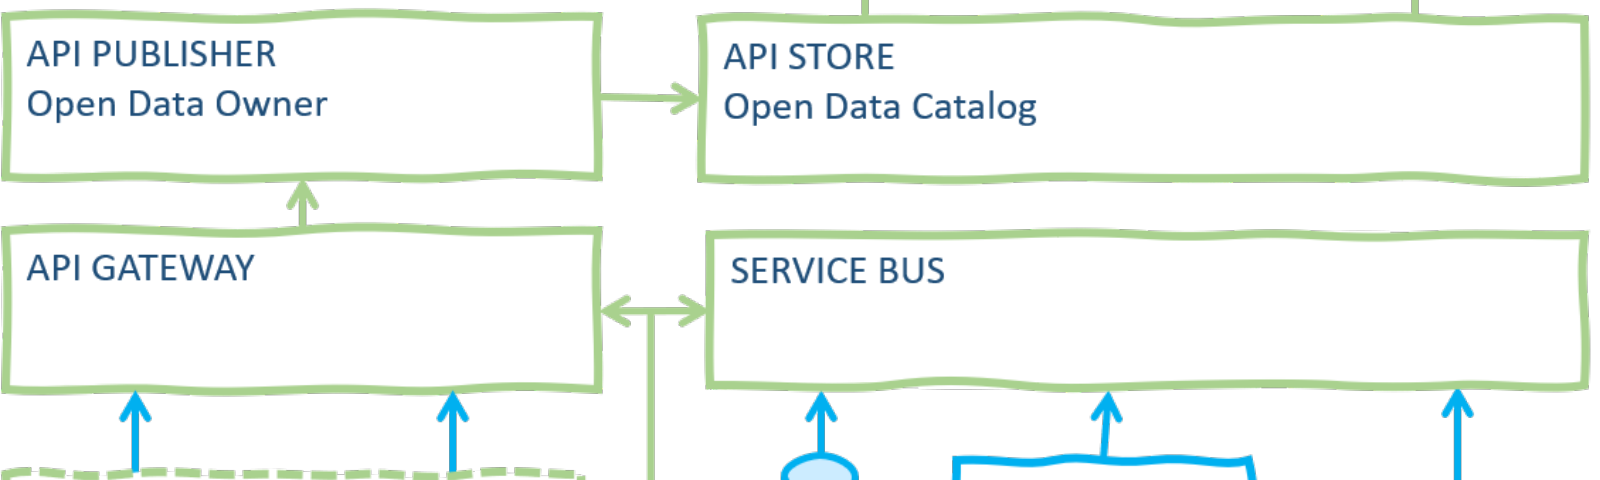 Typical components of an Open Data architecture.